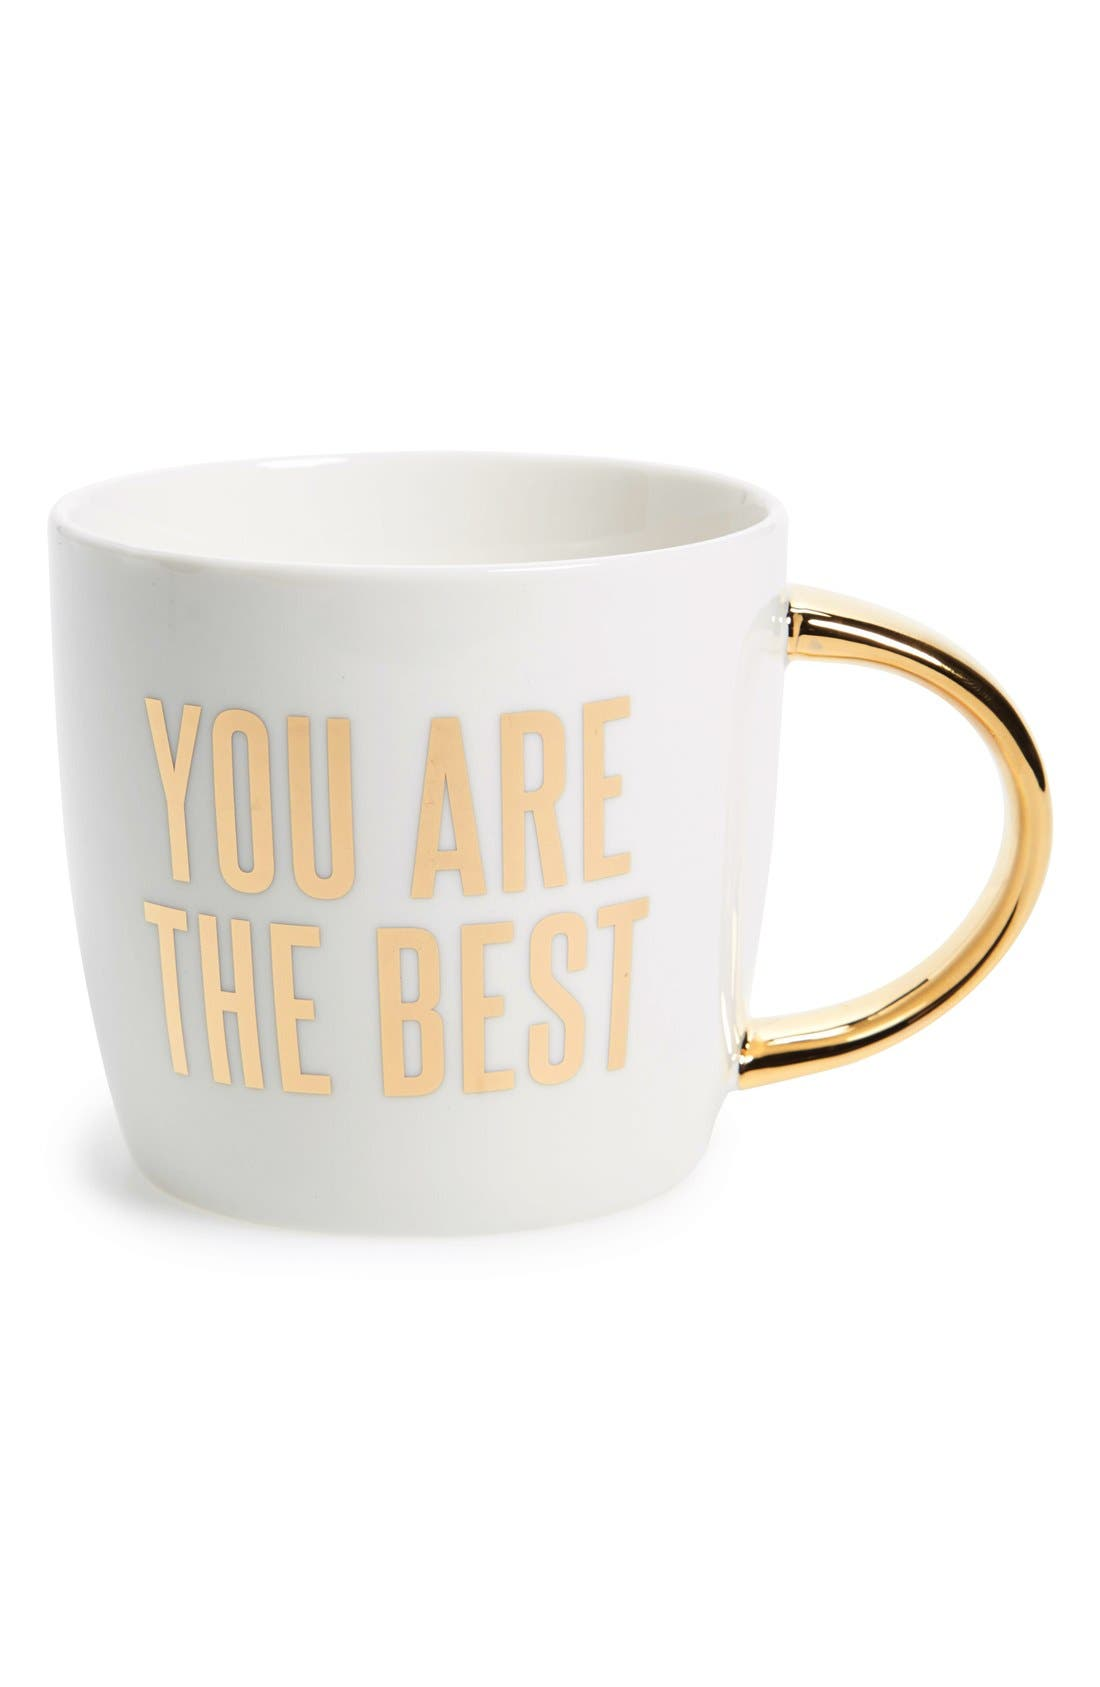 'You Are the Best' Ceramic Mug,                         Main,                         color, 100